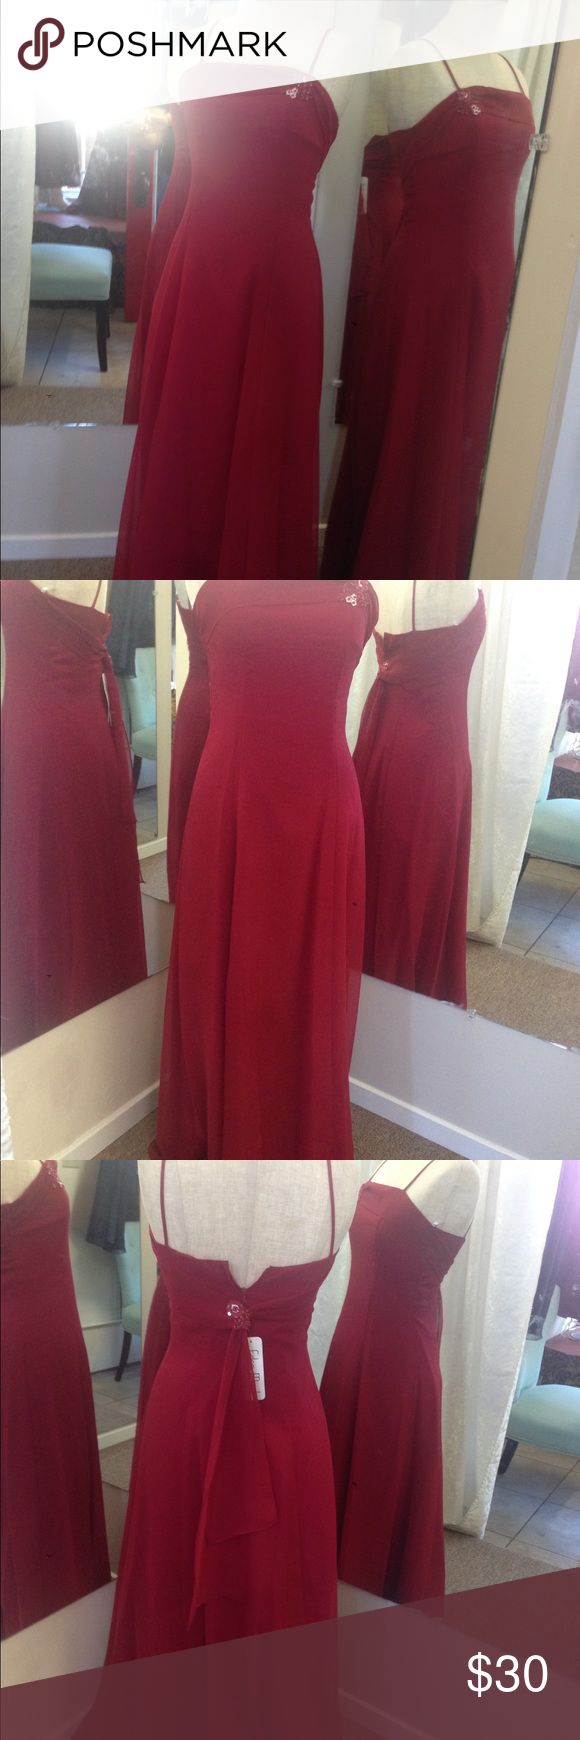 Long junior dress, cranberry  color. Beautiful junior dress sise 12. Plastic zipper on back, waist 25, bust 30 inches, hip 40 inches, long dress 52 inches longer. Eden Maids Dresses Strapless